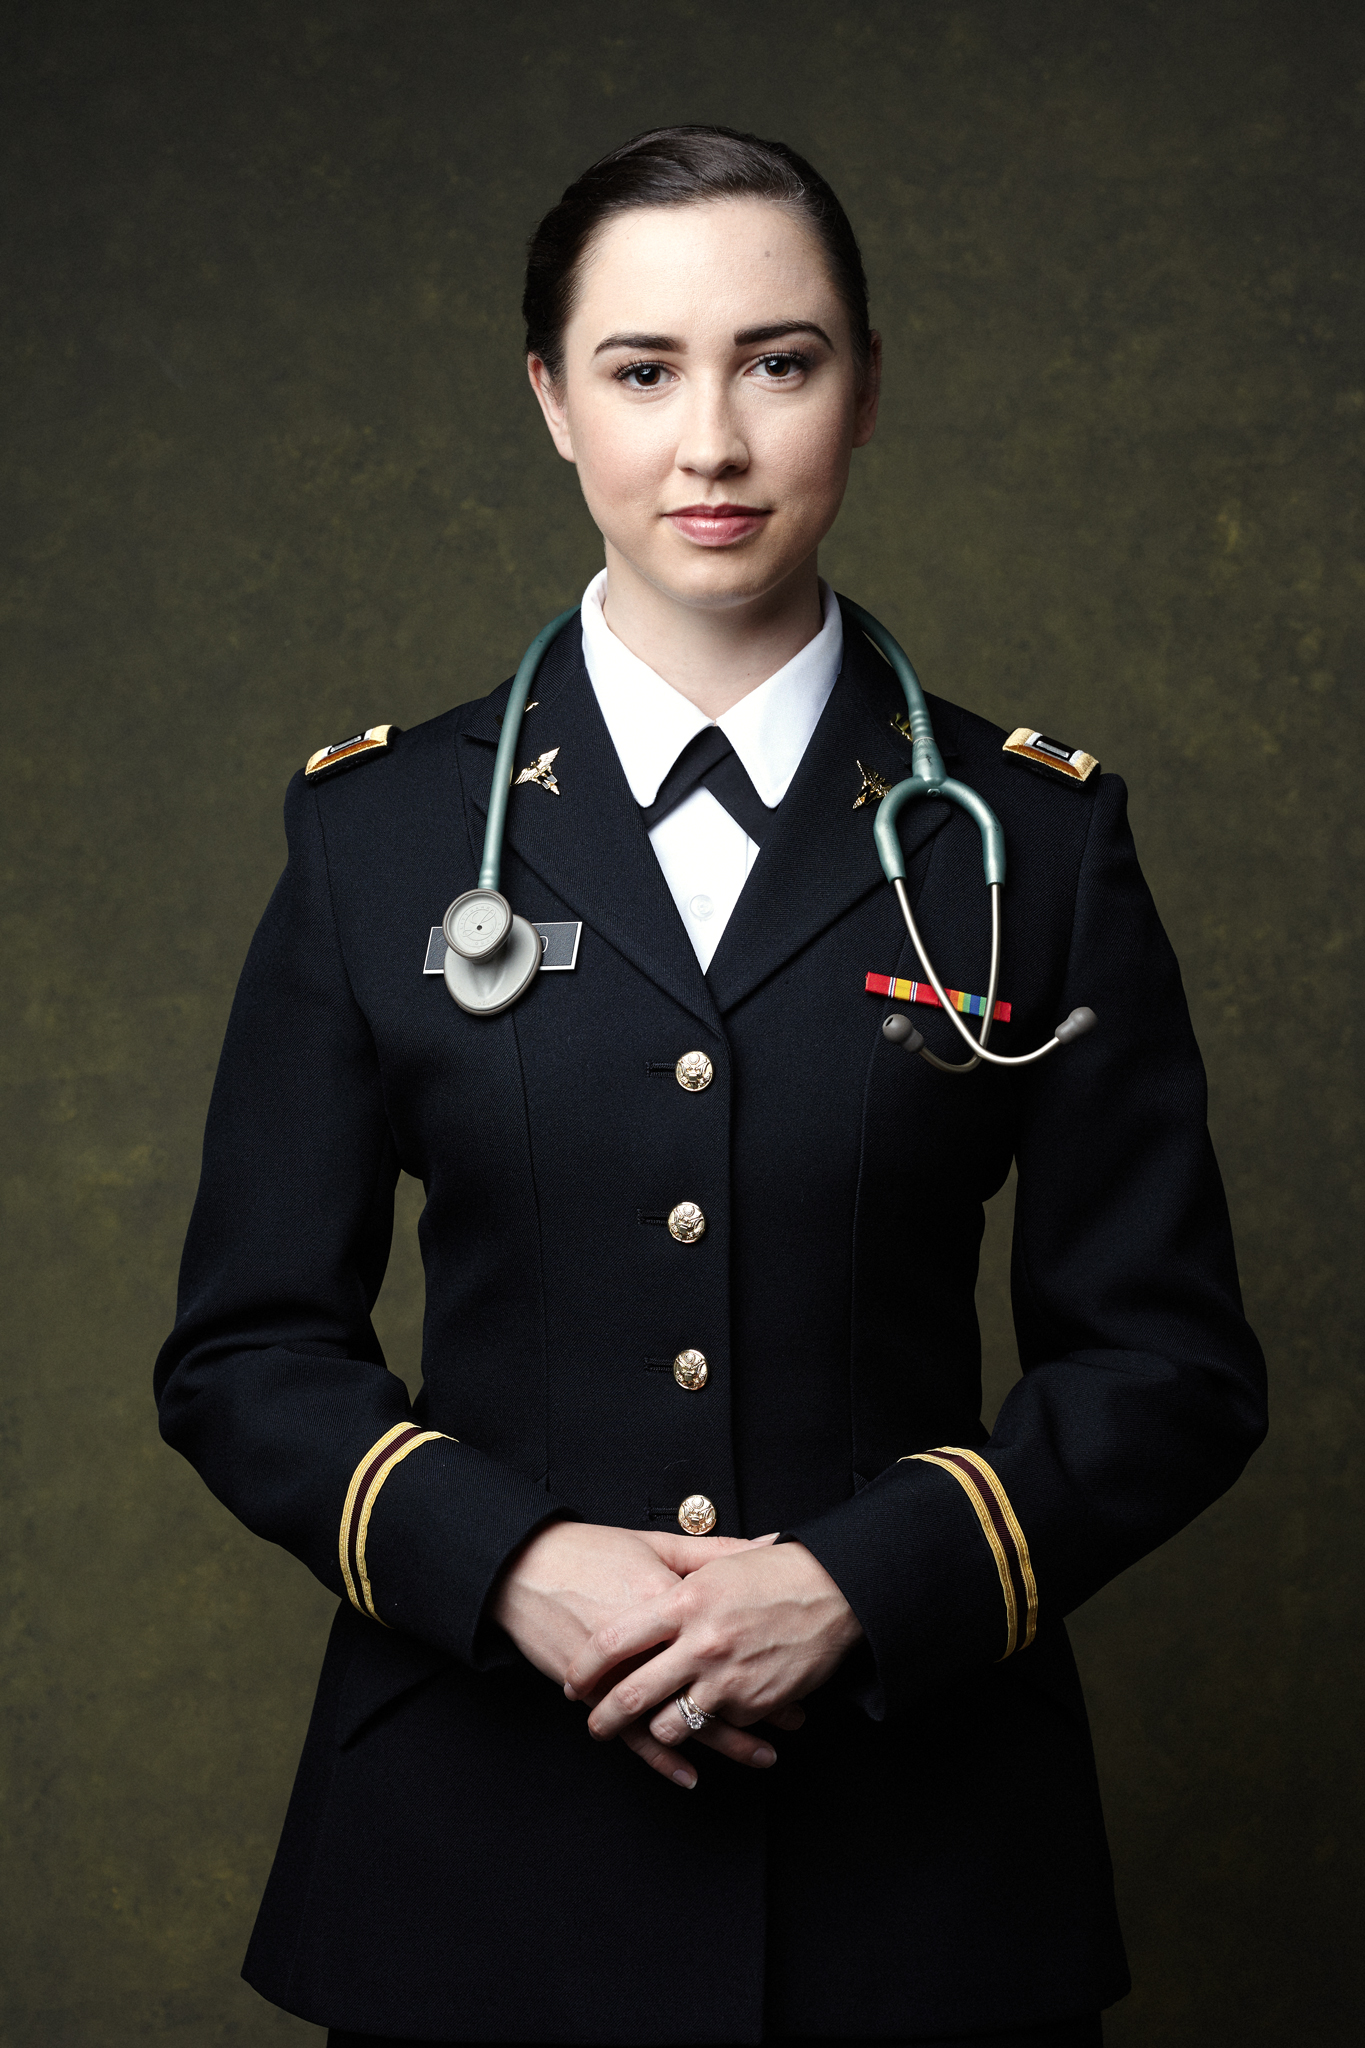 Military-Women-Project-Jenn-McIntyre-LaurenCross.jpg